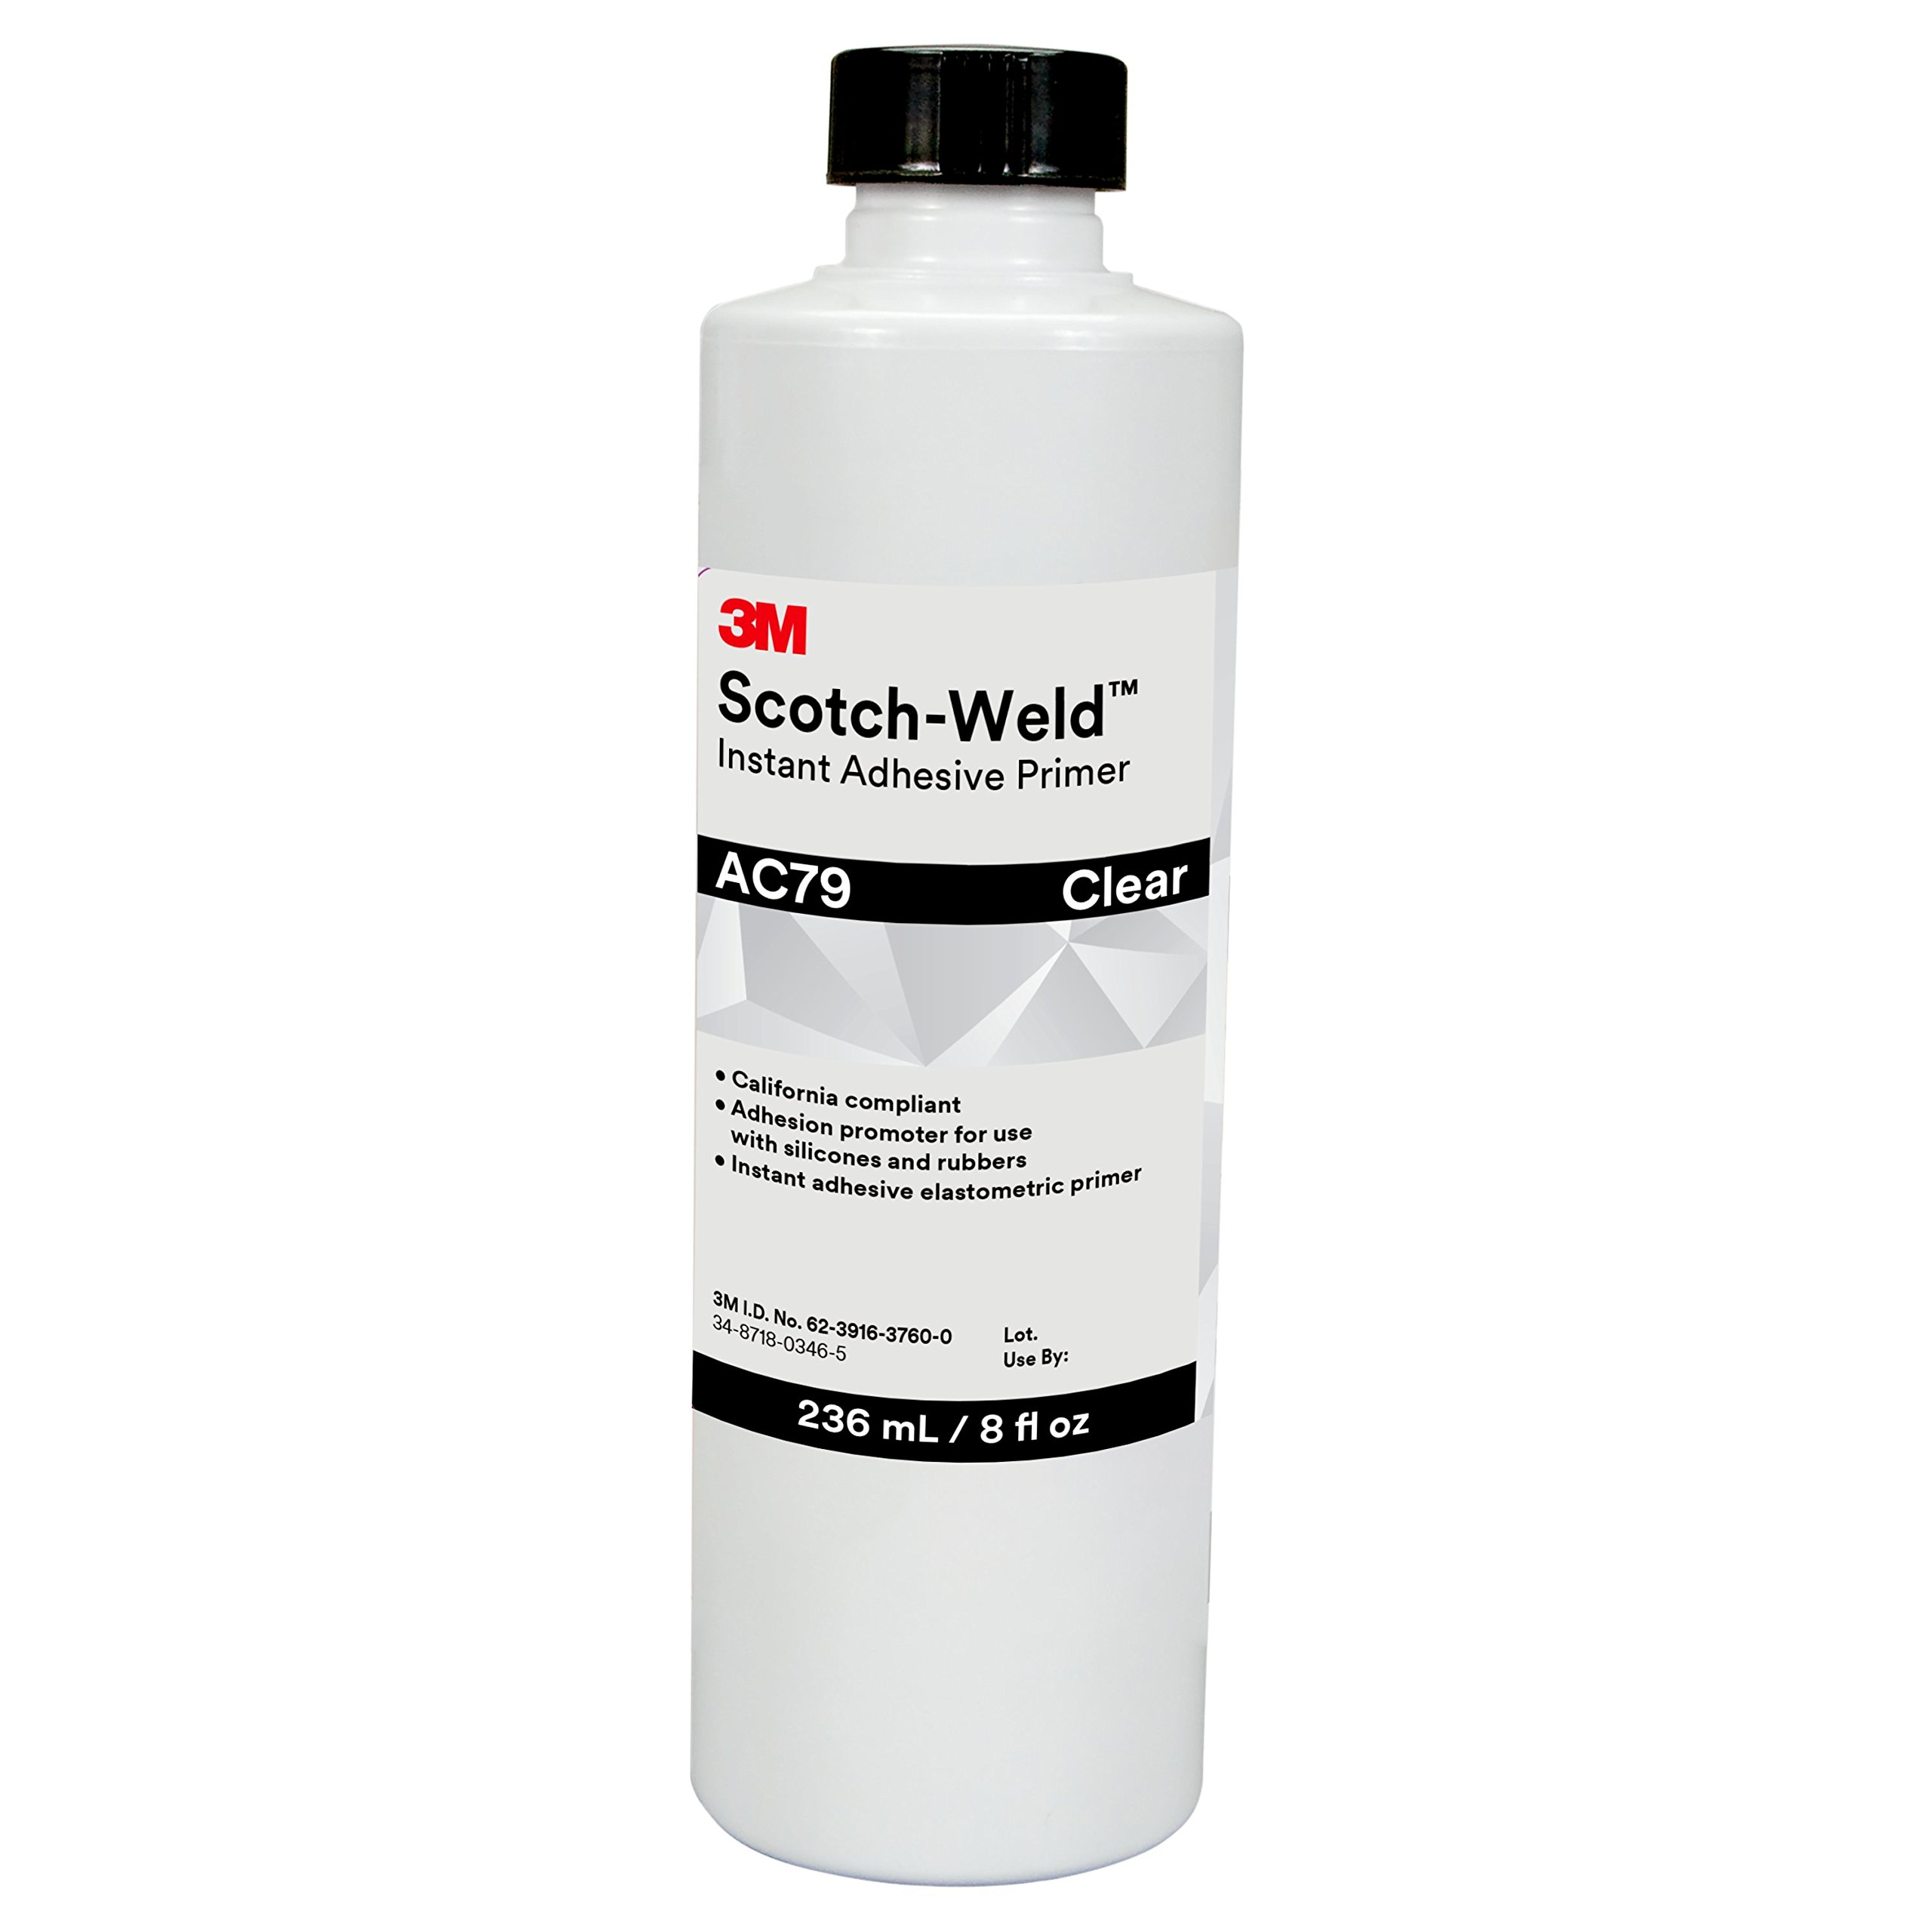 3M Scotch-Weld 31389 Instant Adhesive Primer AC79, 236 mL, 8 fl. oz.